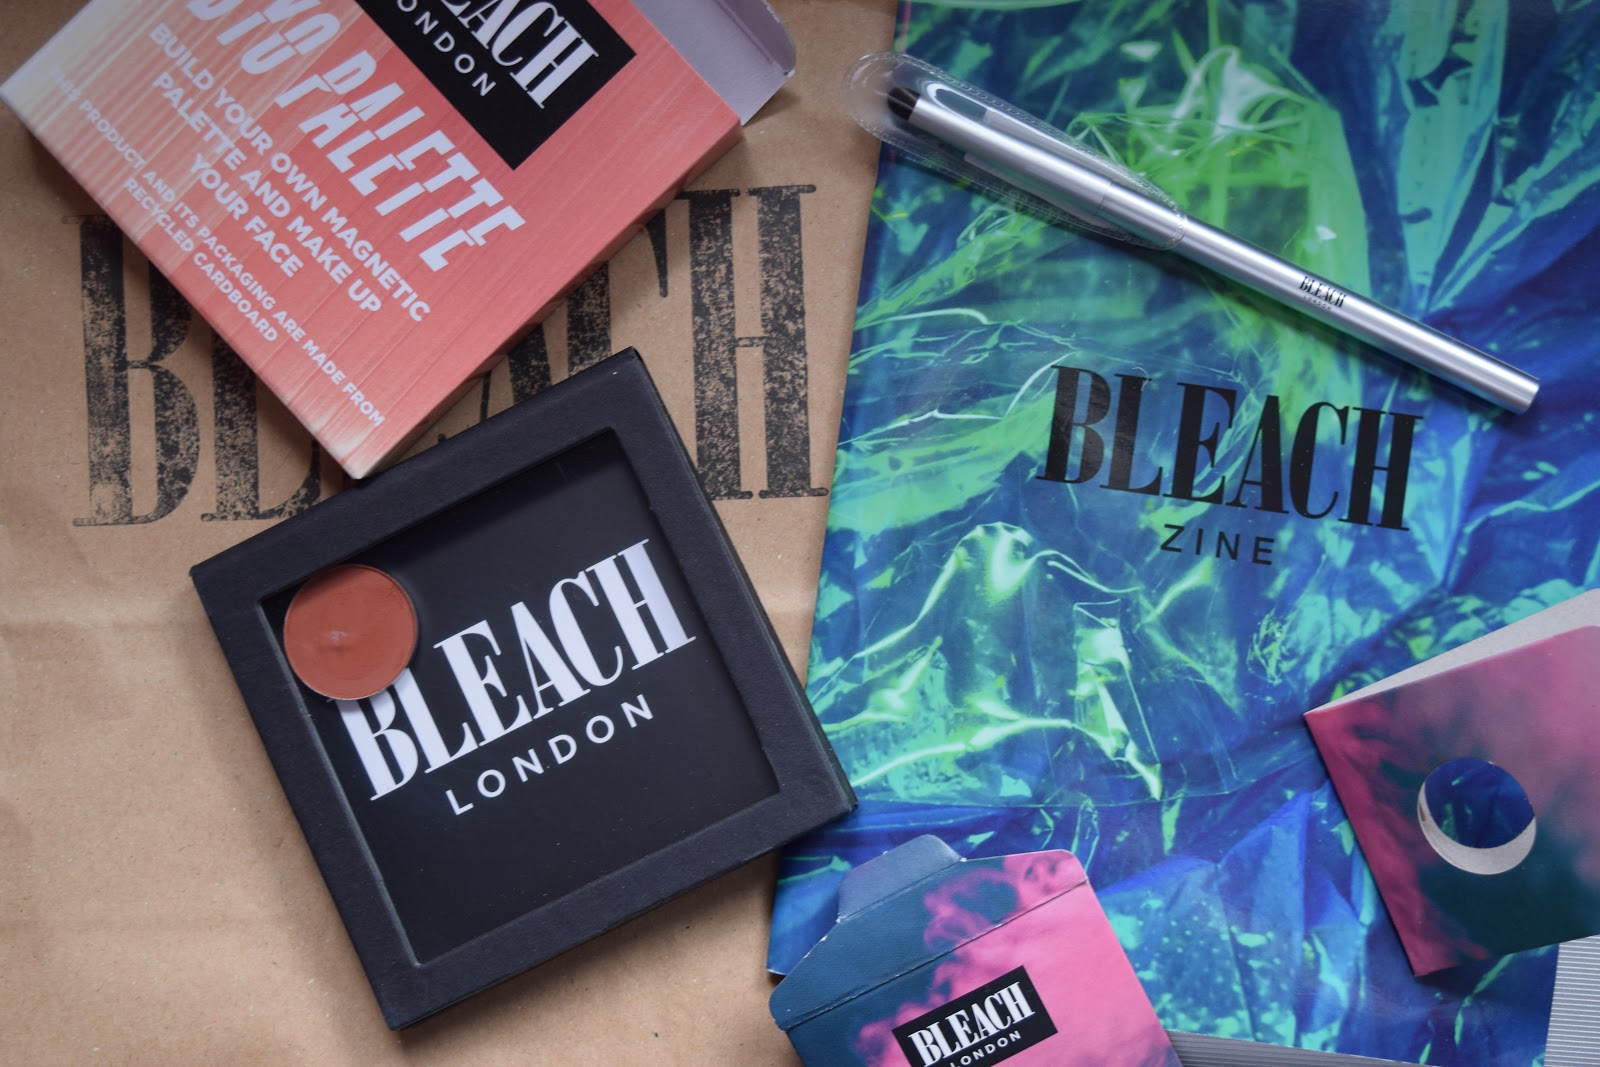 Bleach London makeup